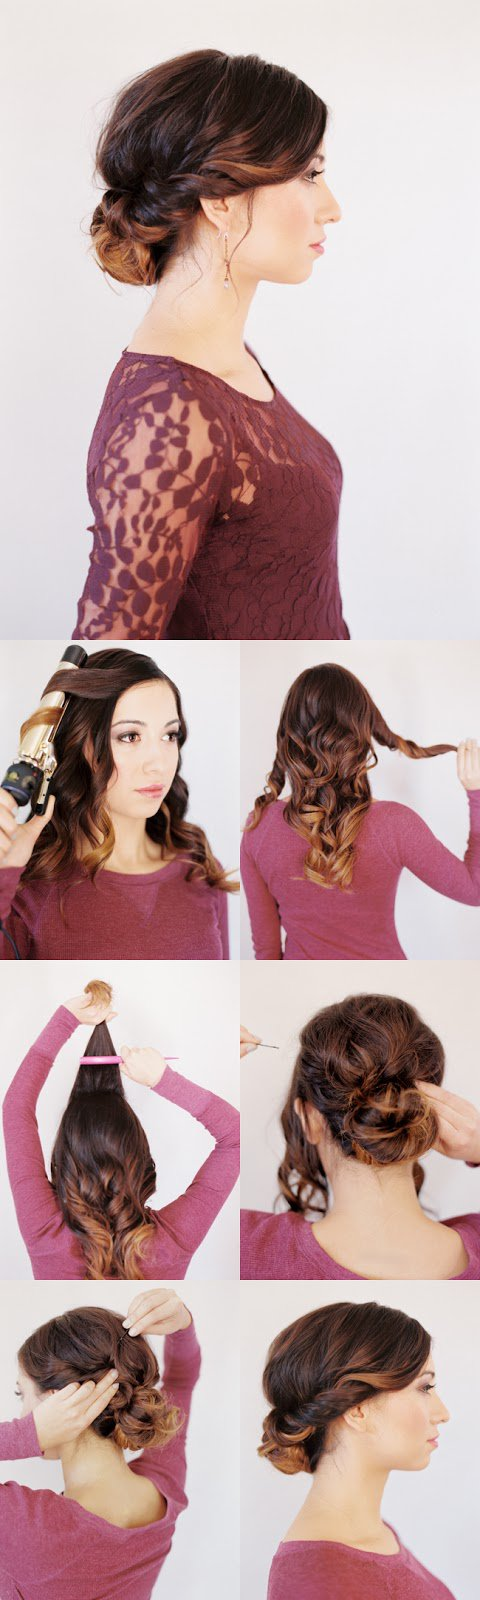 16 Stunning Hairstyles with Step-by-Step Tutorials - Pretty Designs